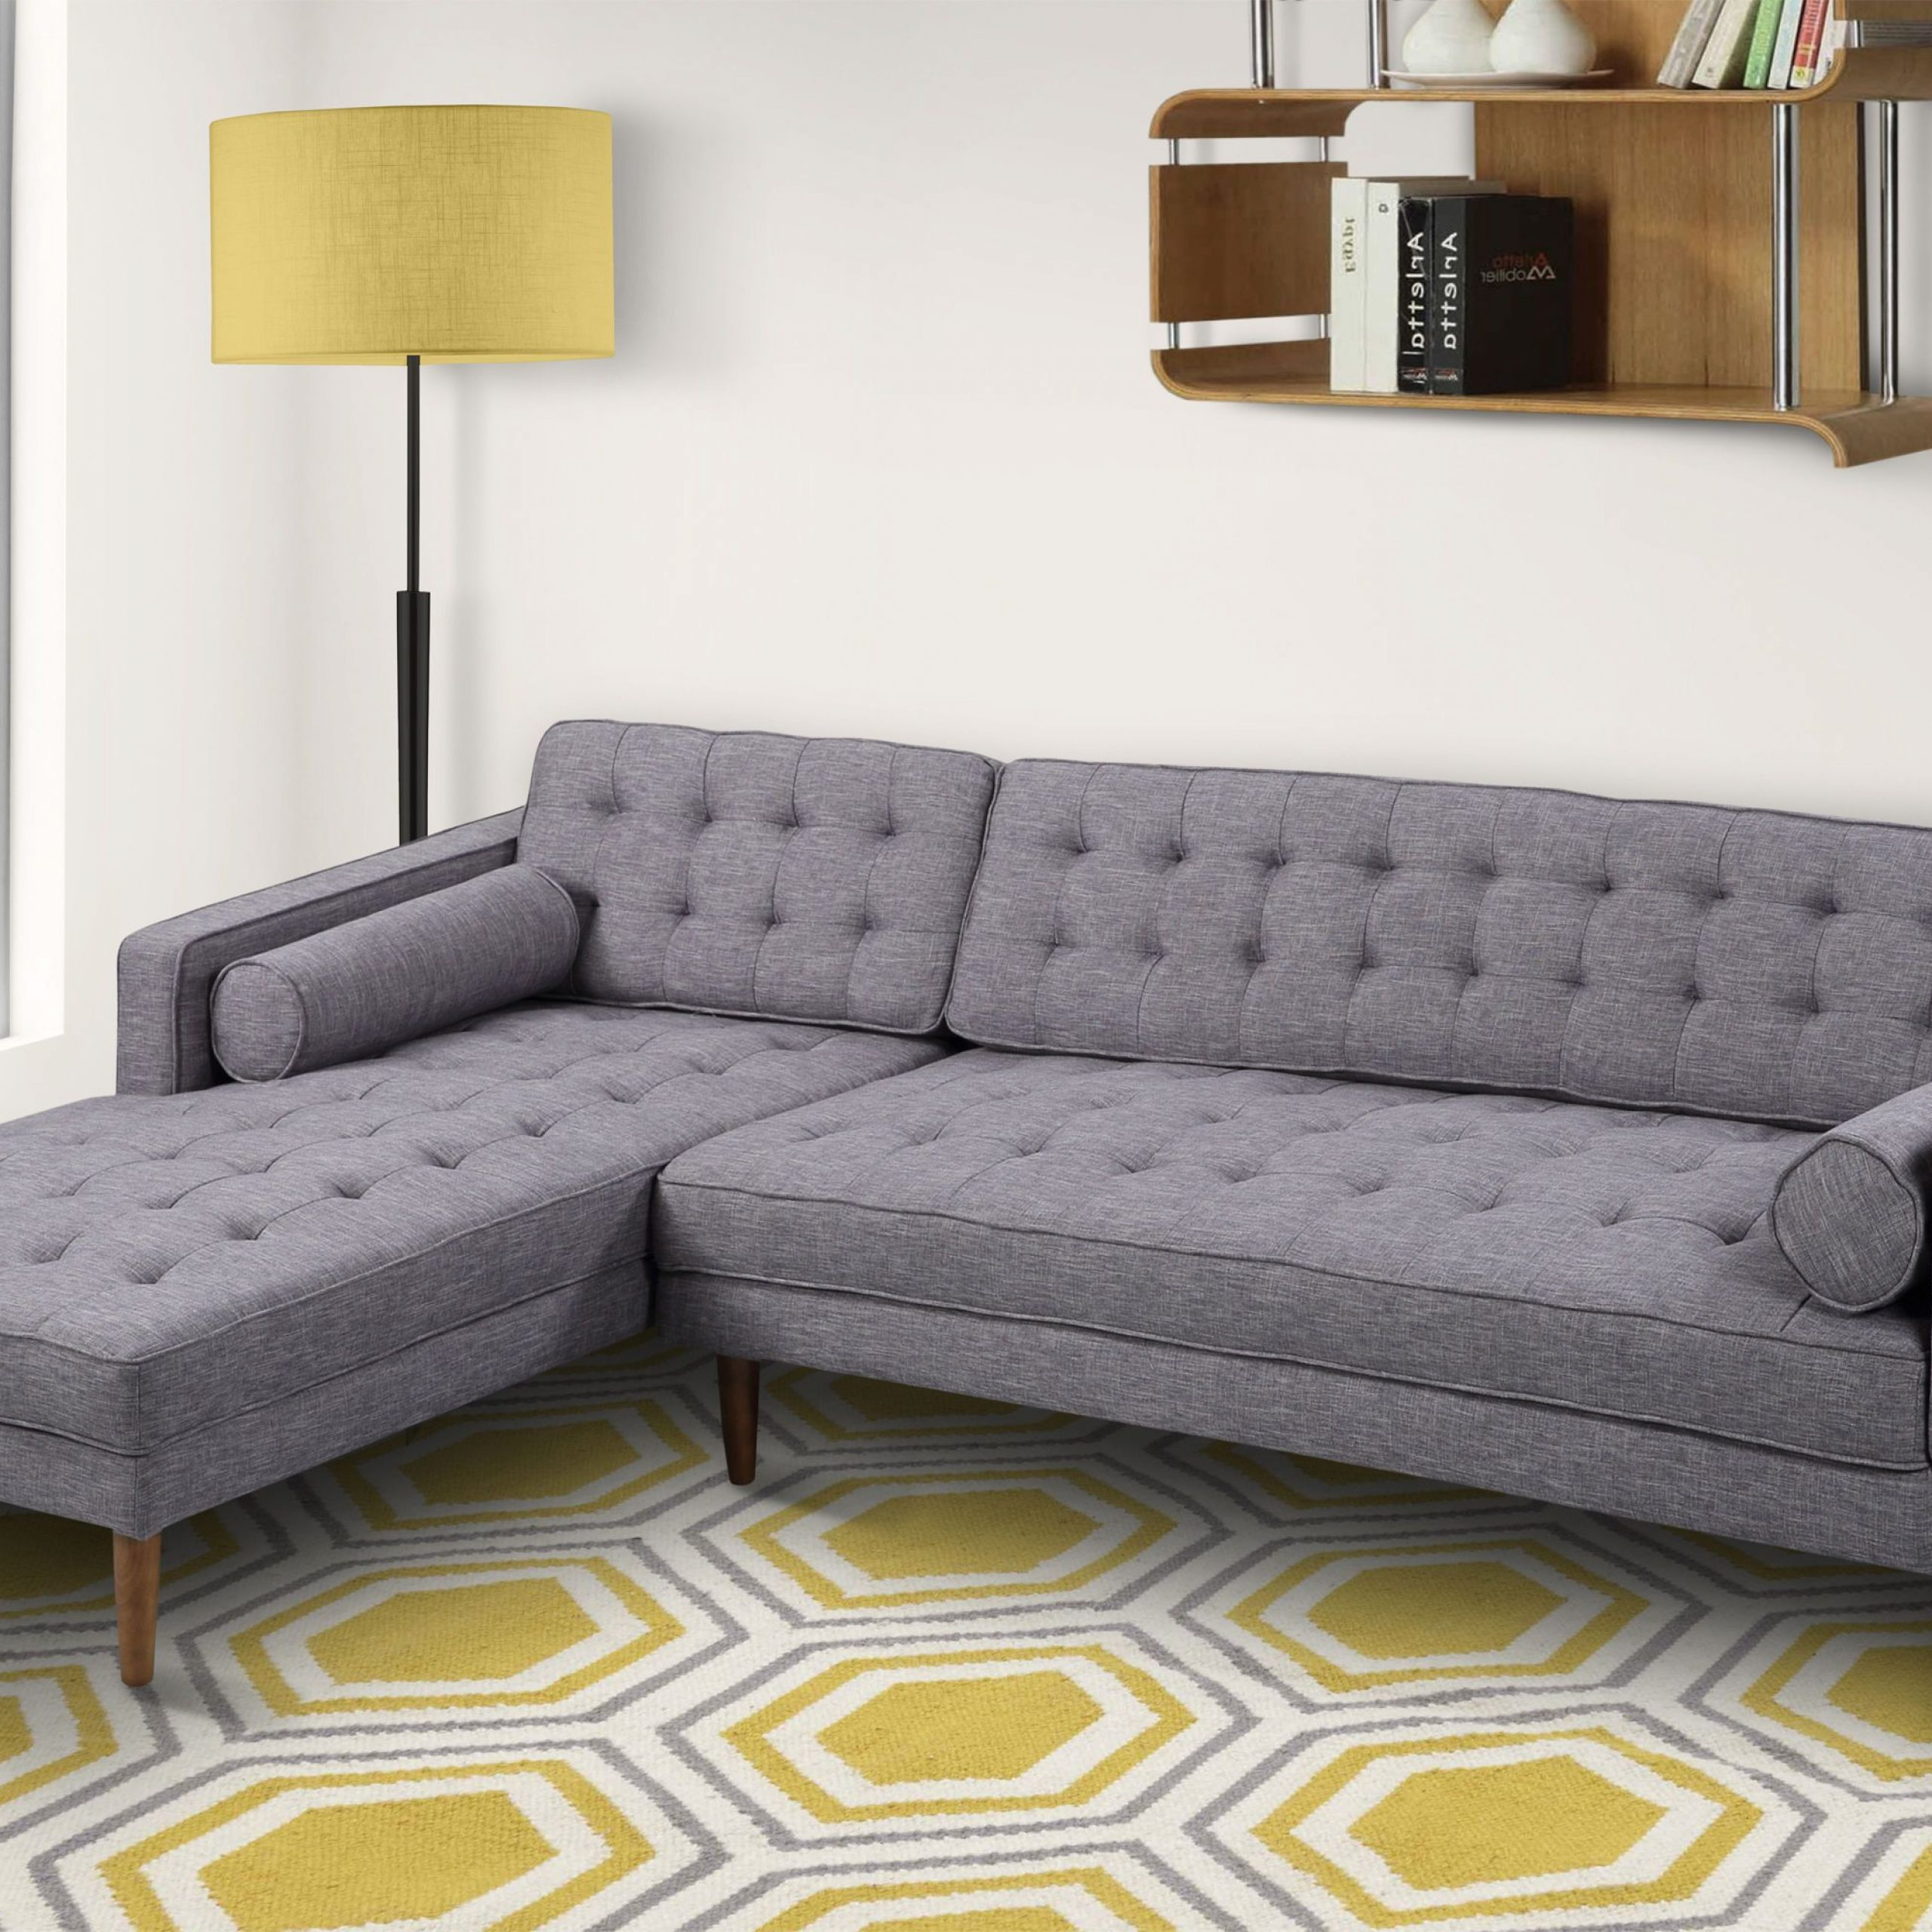 Element Left Side Chaise Sectional Sofas In Dark Gray Linen And Walnut Legs Regarding Fashionable Element Dark Gray Fabric Walnut Wood Legs Right Side (View 1 of 20)